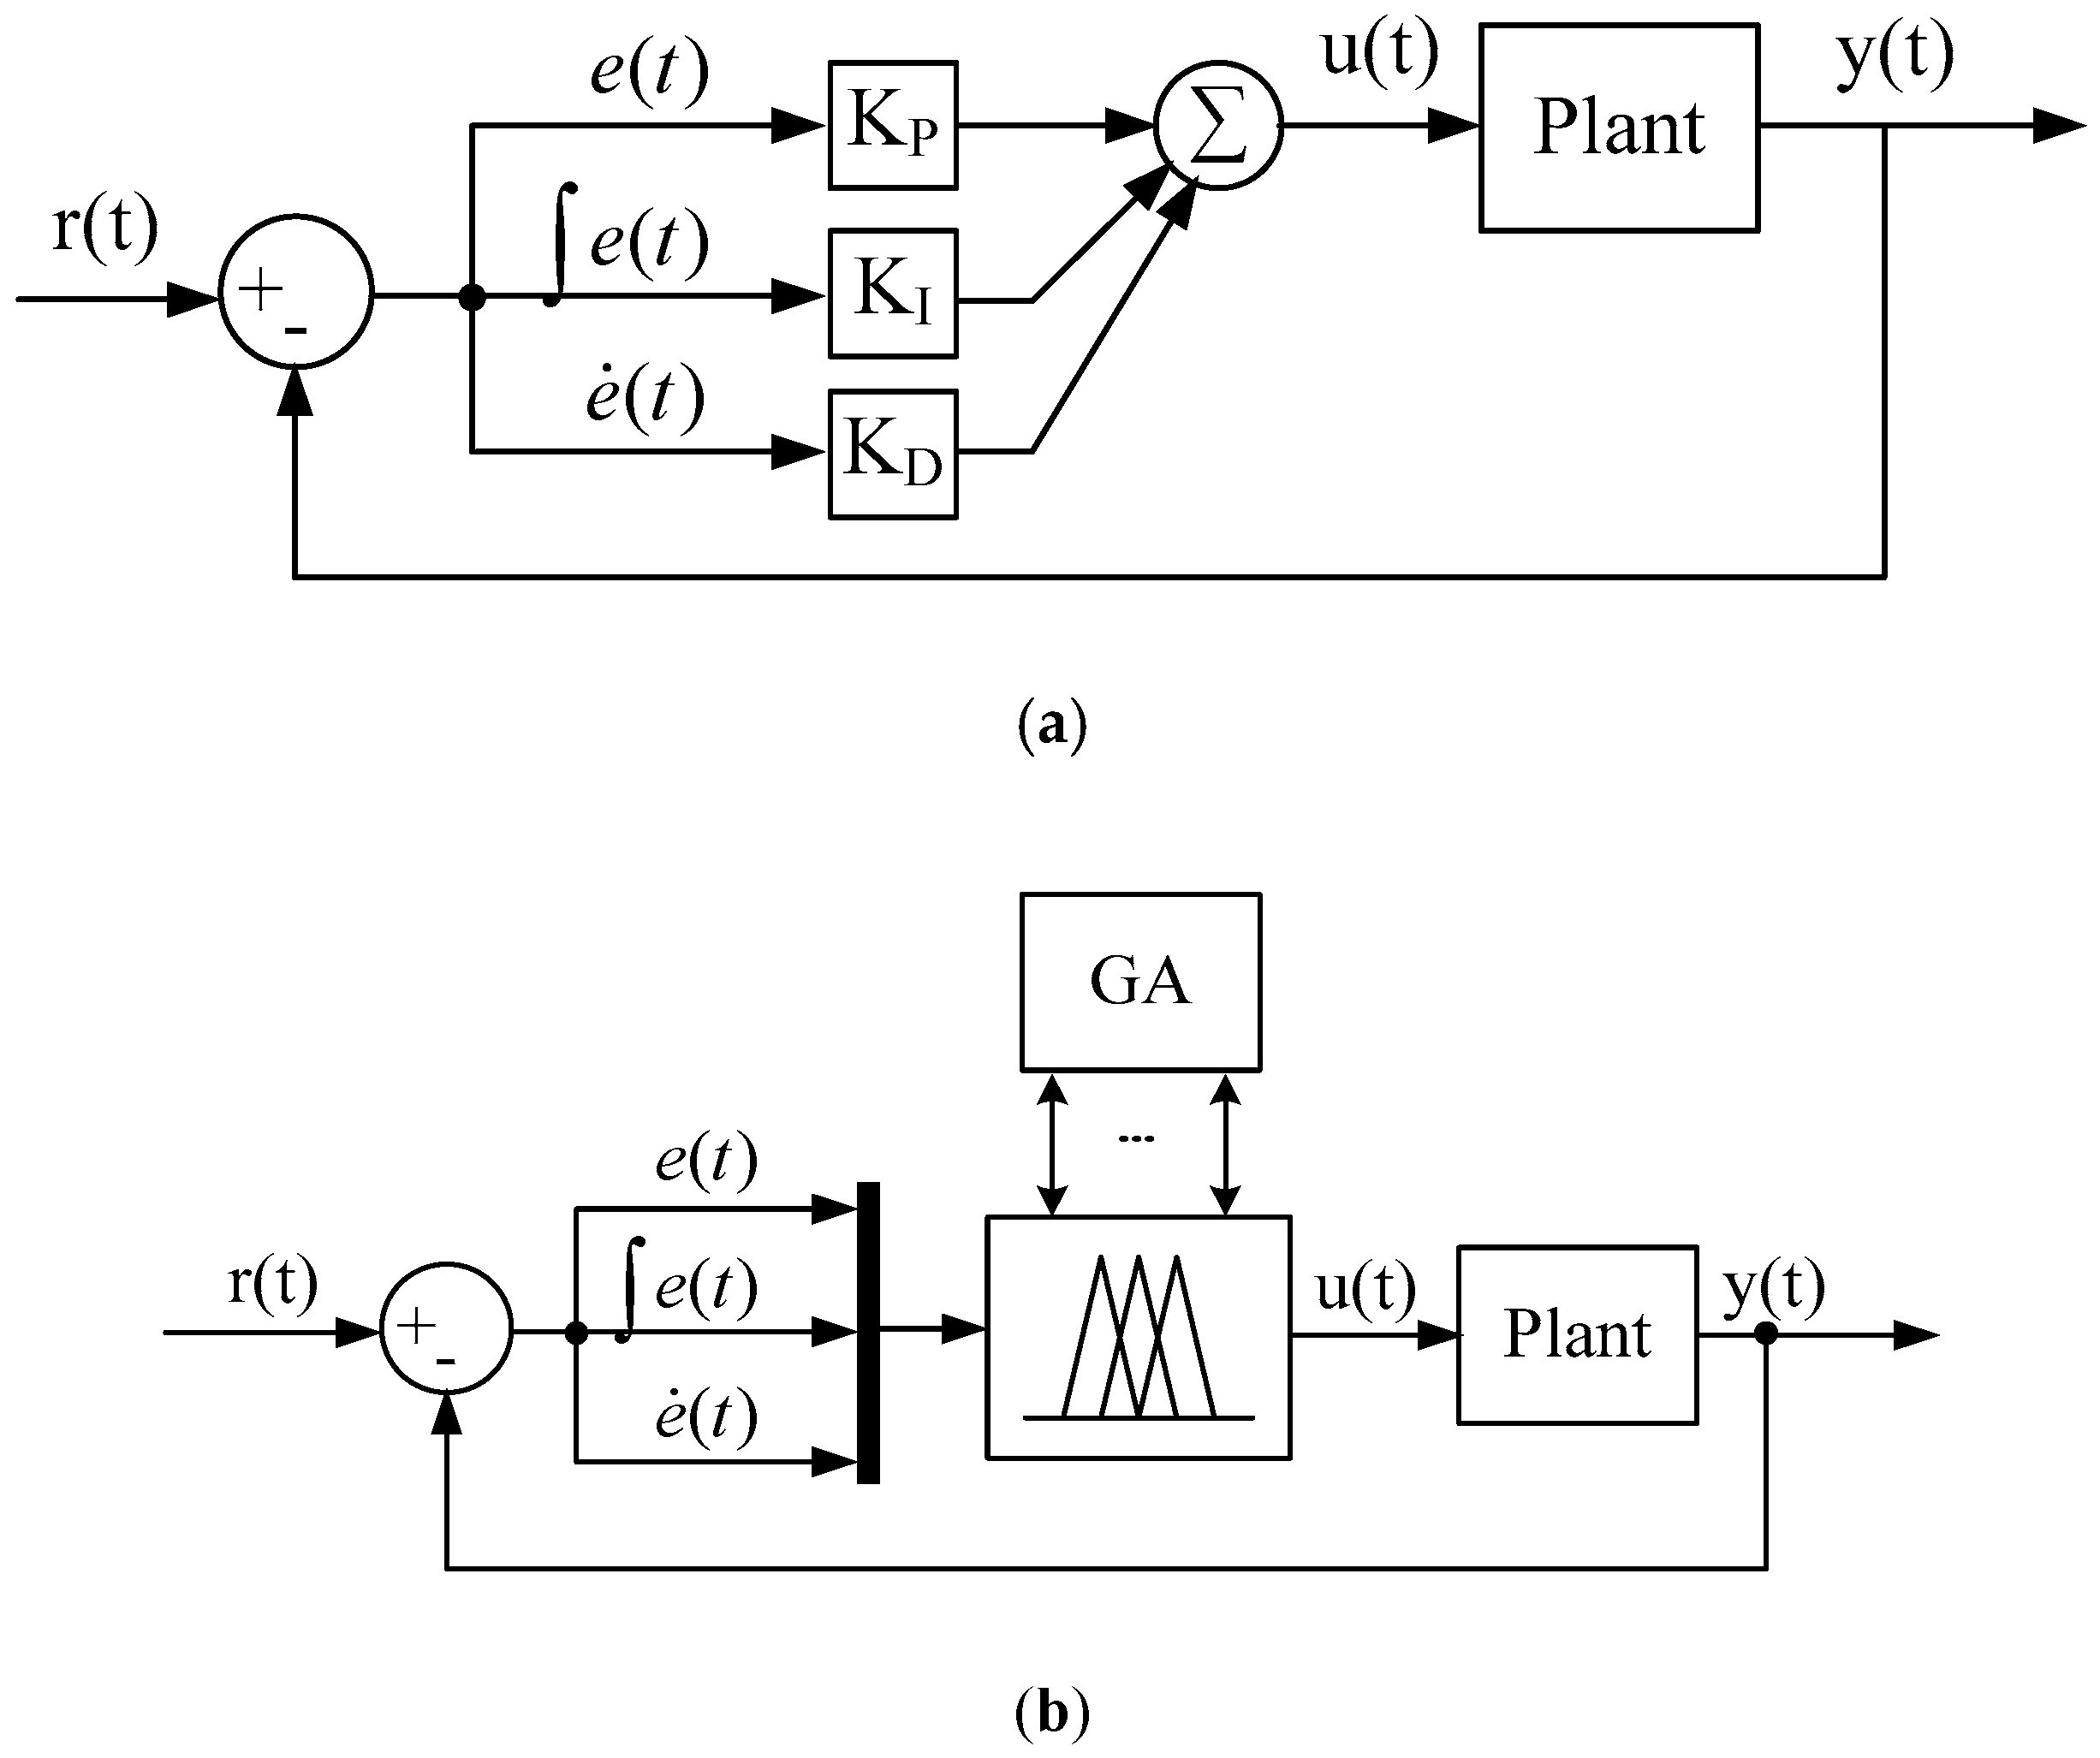 Applied Sciences Free Full Text An Optimal Fuzzy Pid Controller Design Based On Conventional Pid Control And Nonlinear Factors